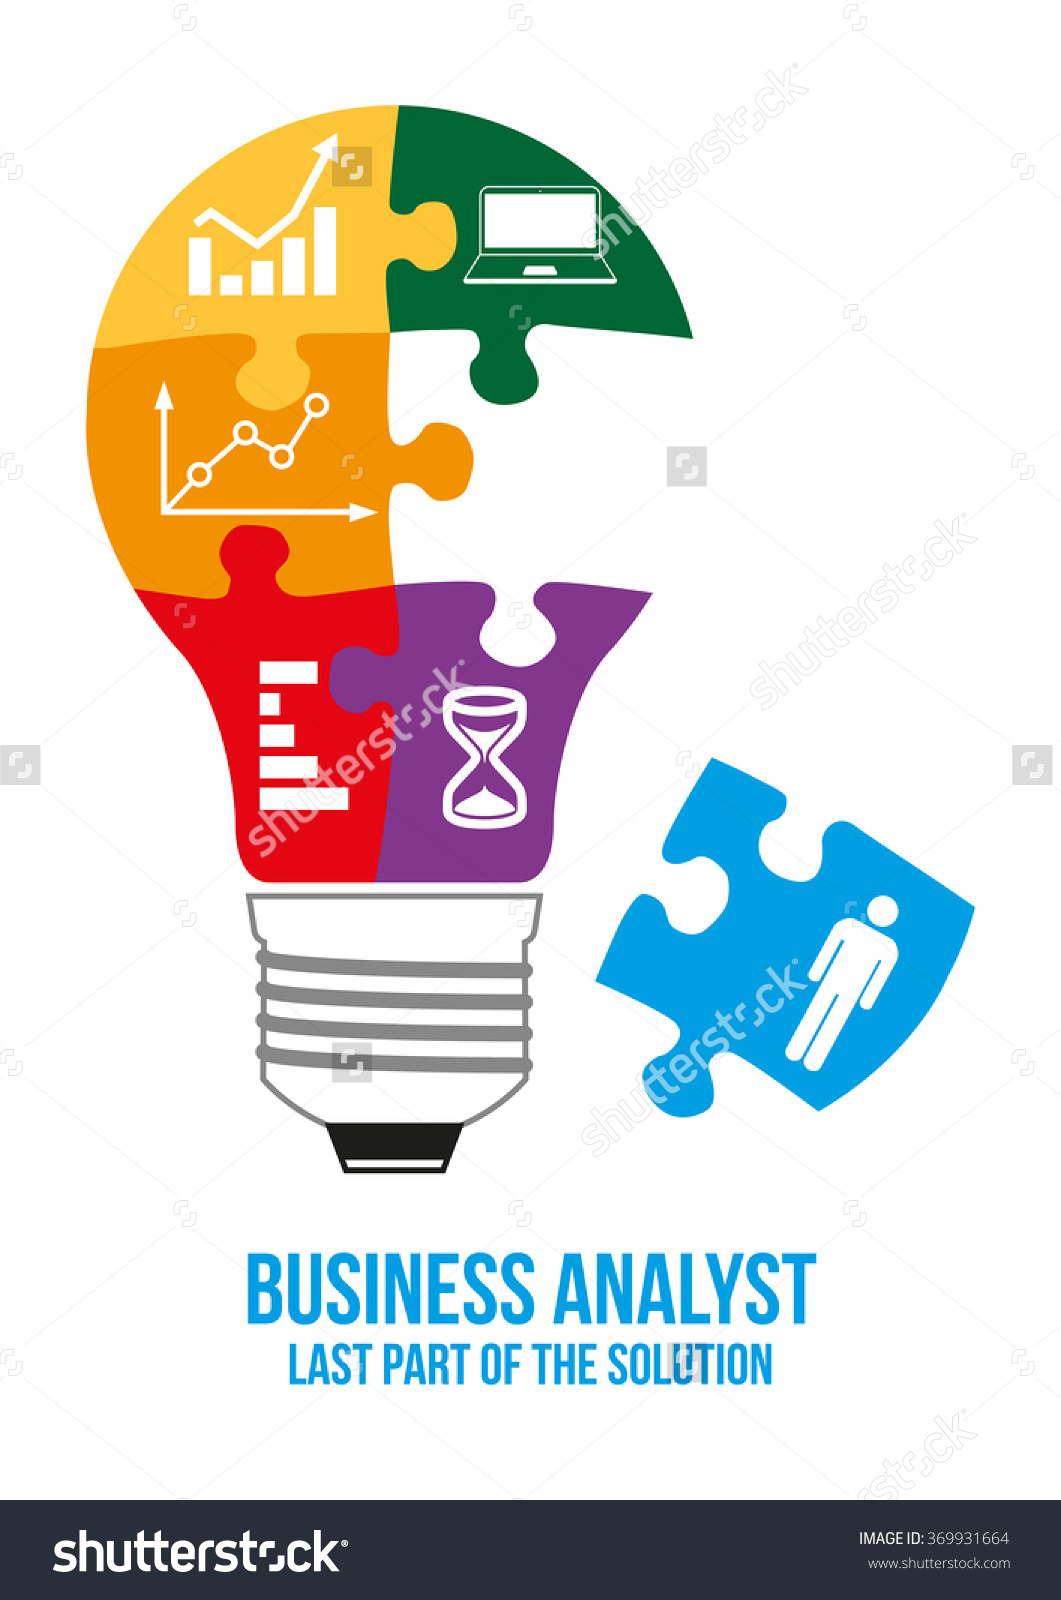 Business Analyst Design Concept Light Bulb Stock Vector 369931664.